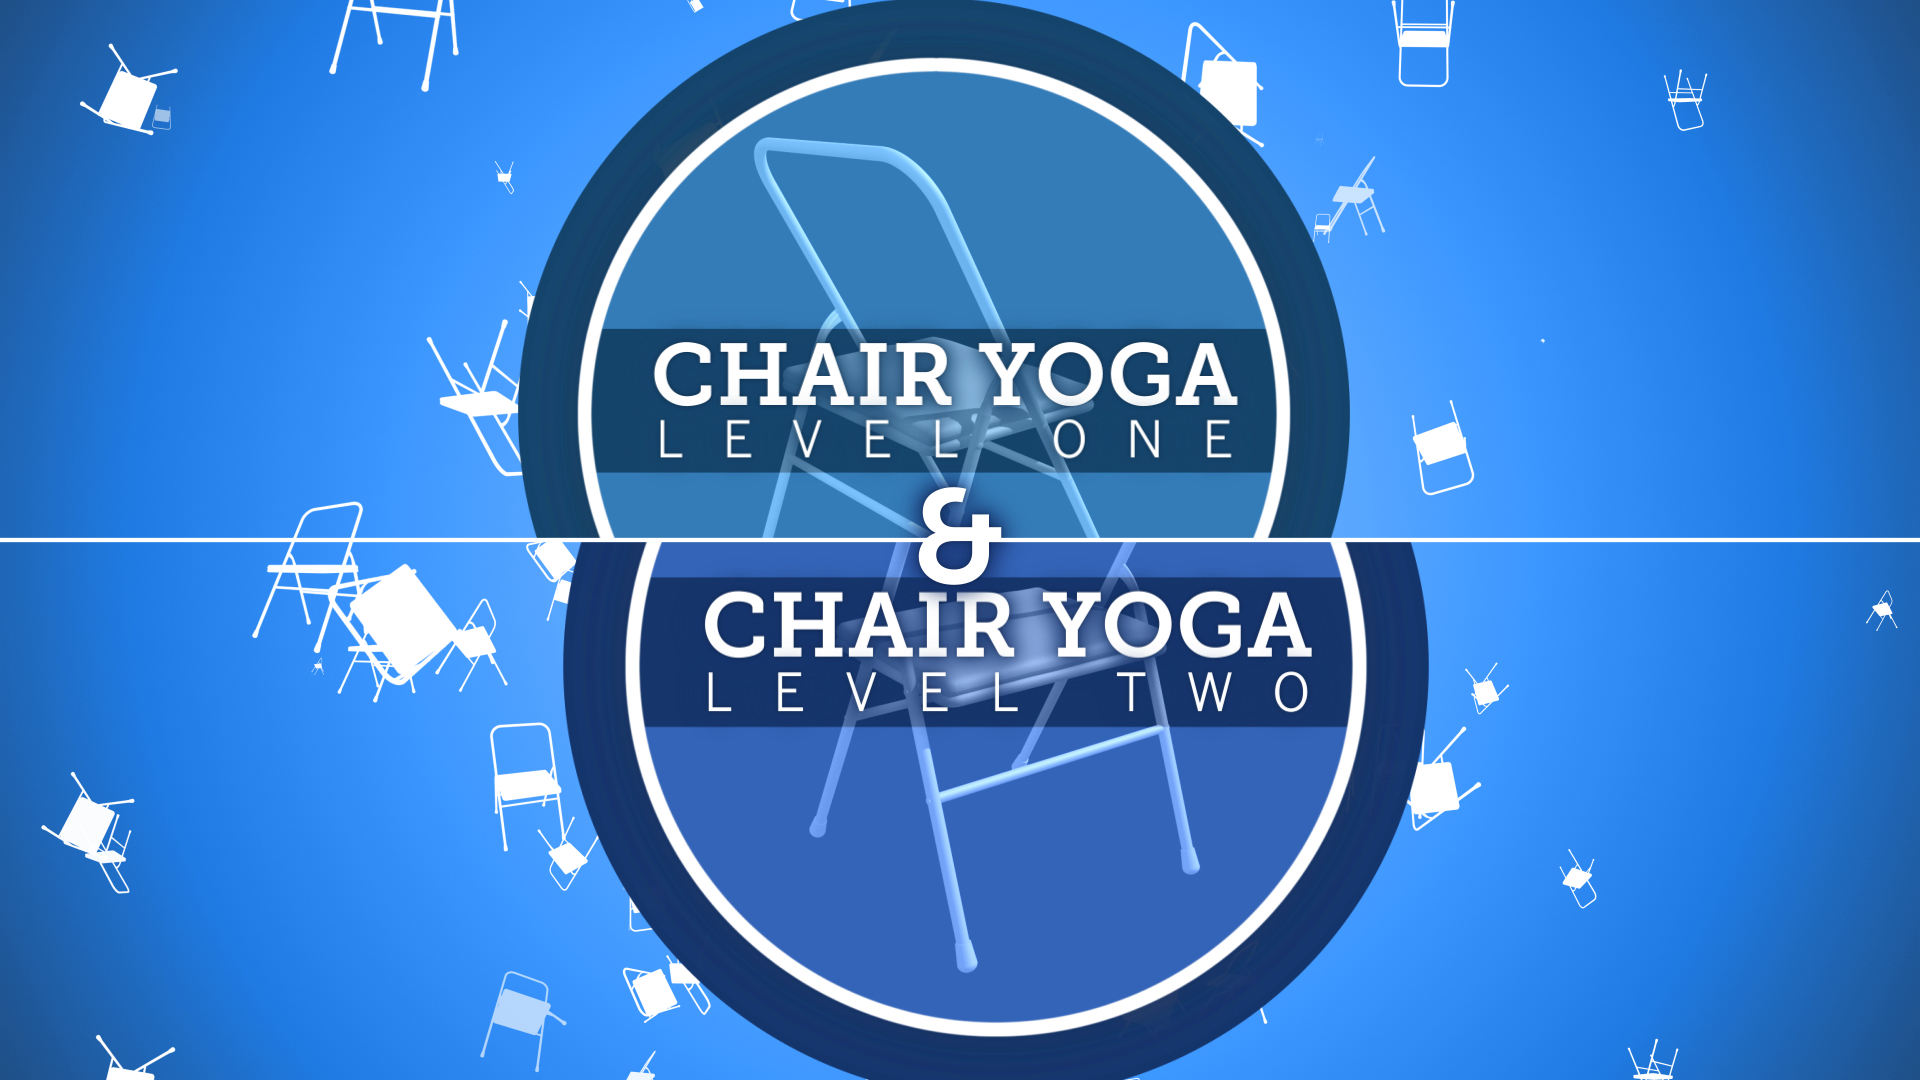 USB Version Chair Yoga Levels One Two Includes Both Manuals 50 Pages Total